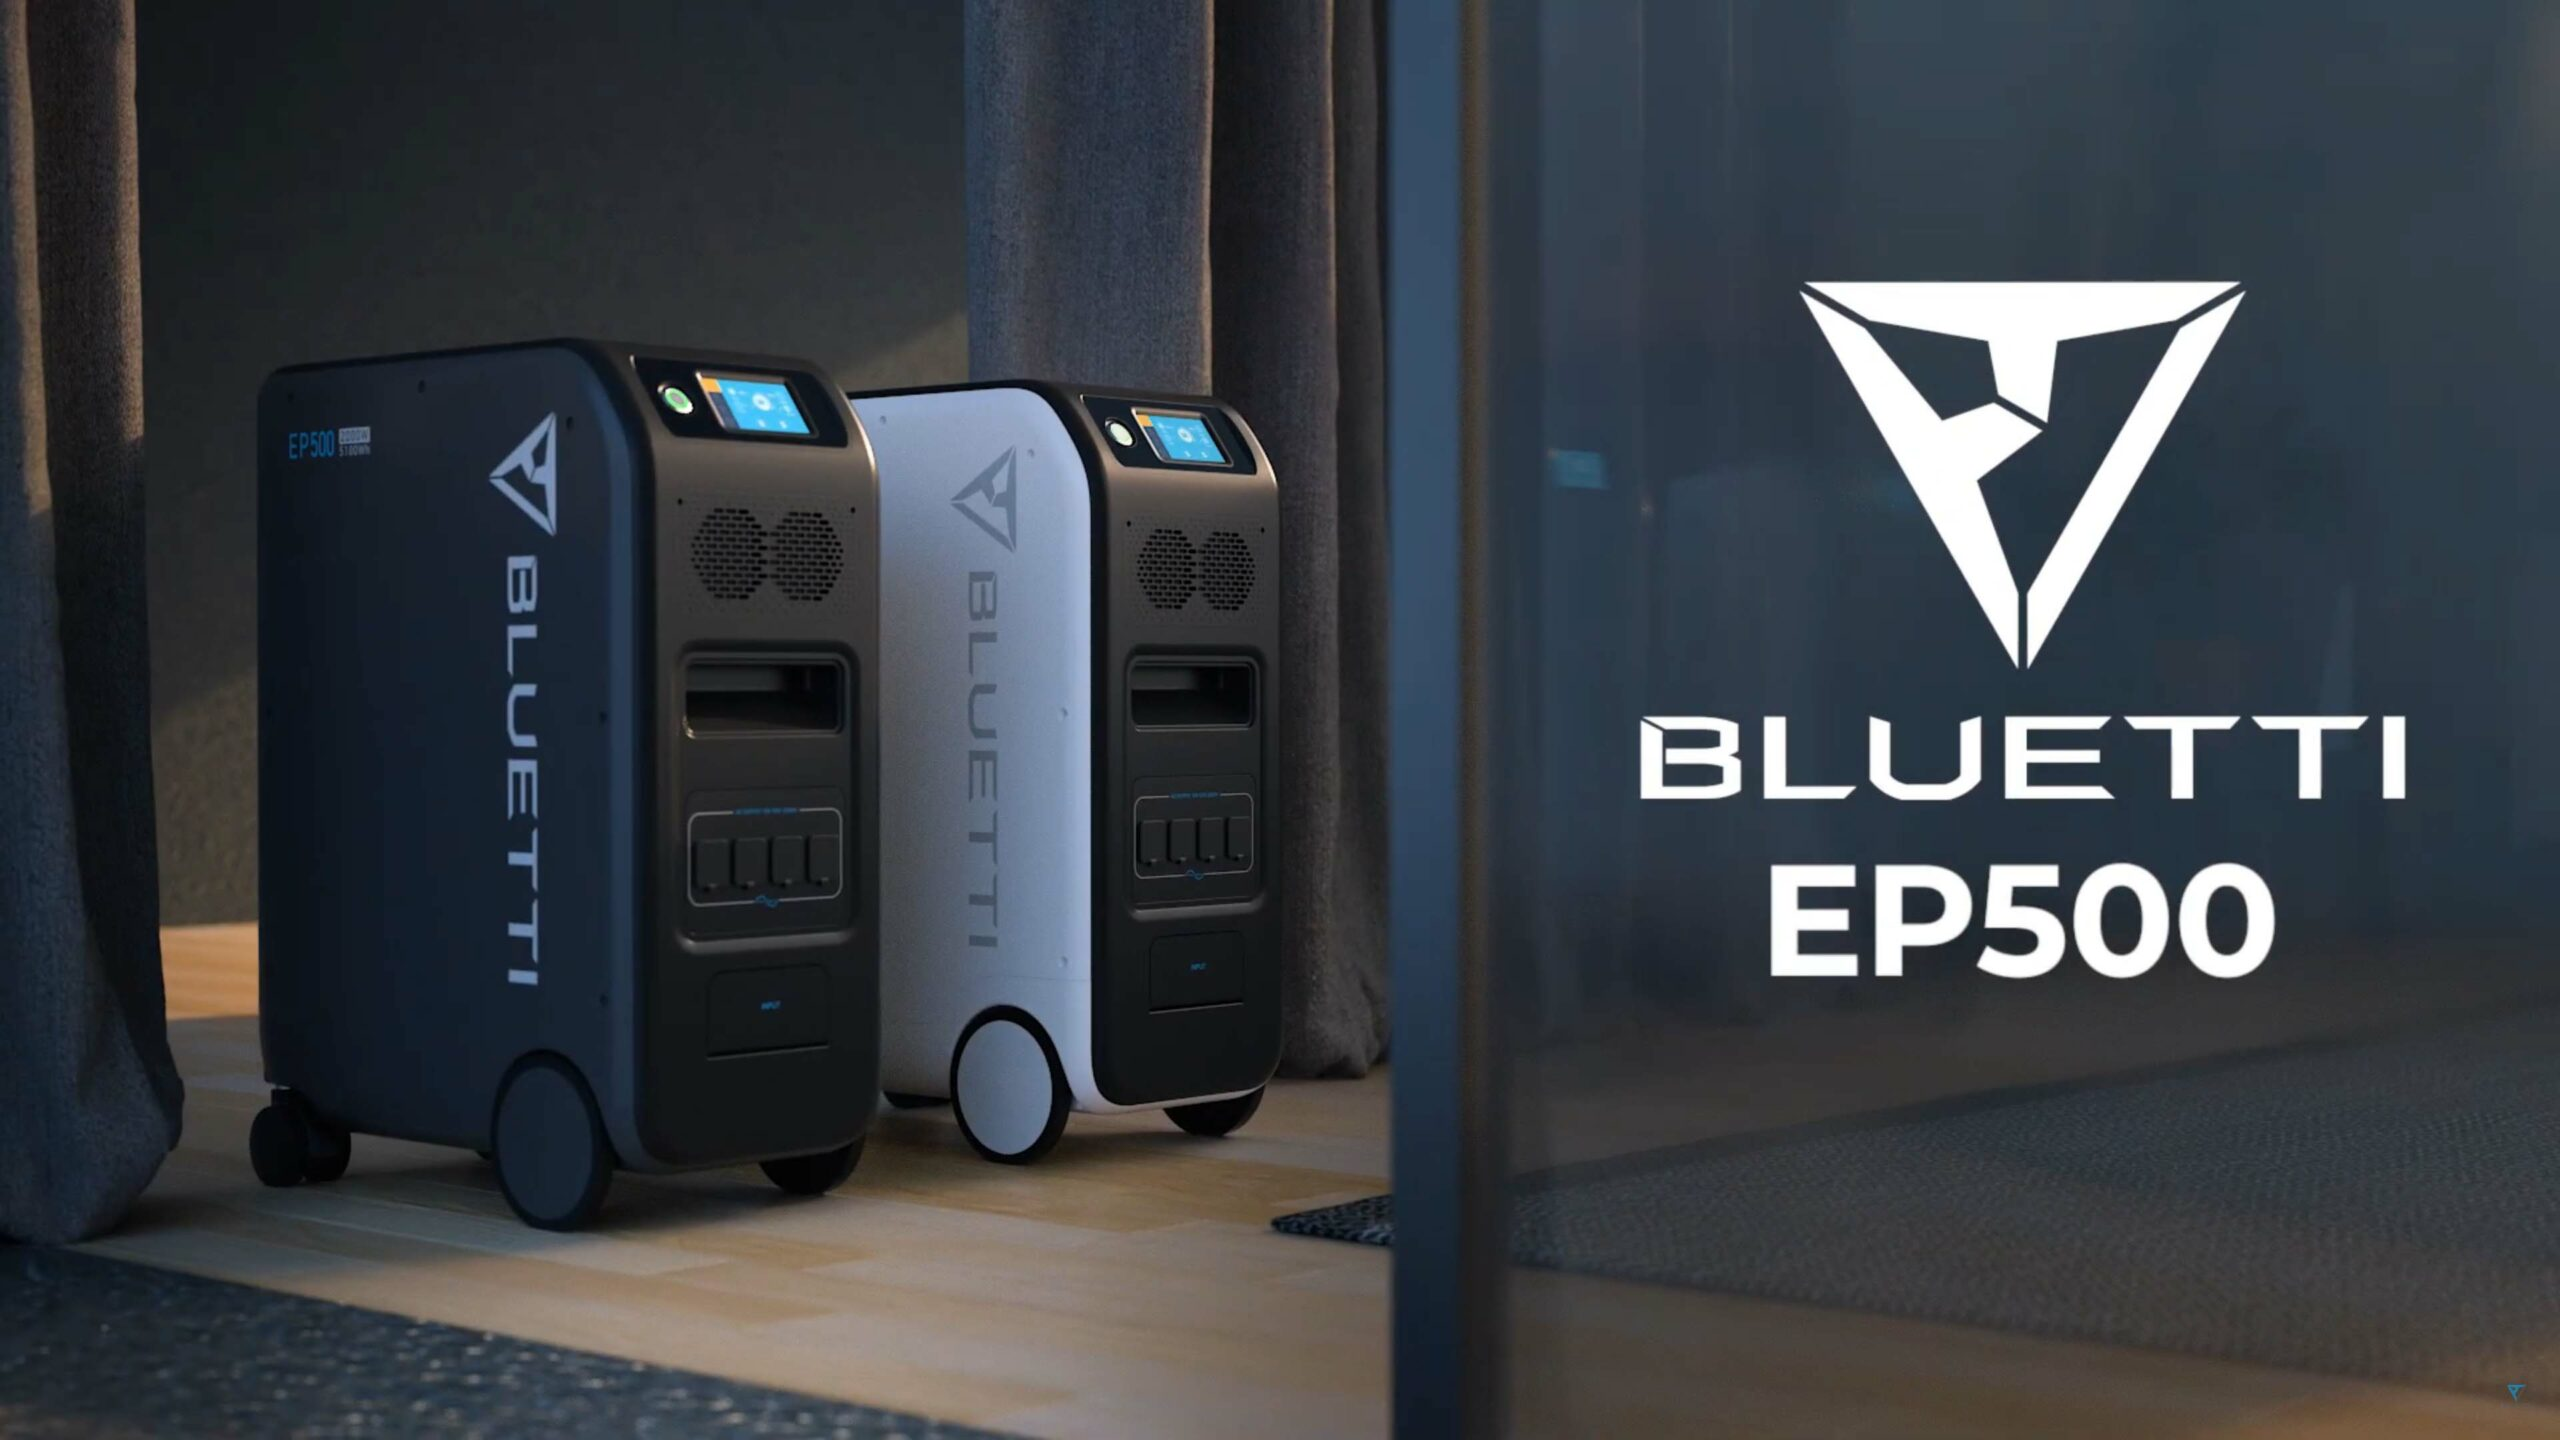 Get to know the BLUETTI EP500: Huge solar battery with an output of 5100 watt hours, with which you can cut the cable to the power grid - Wccftech